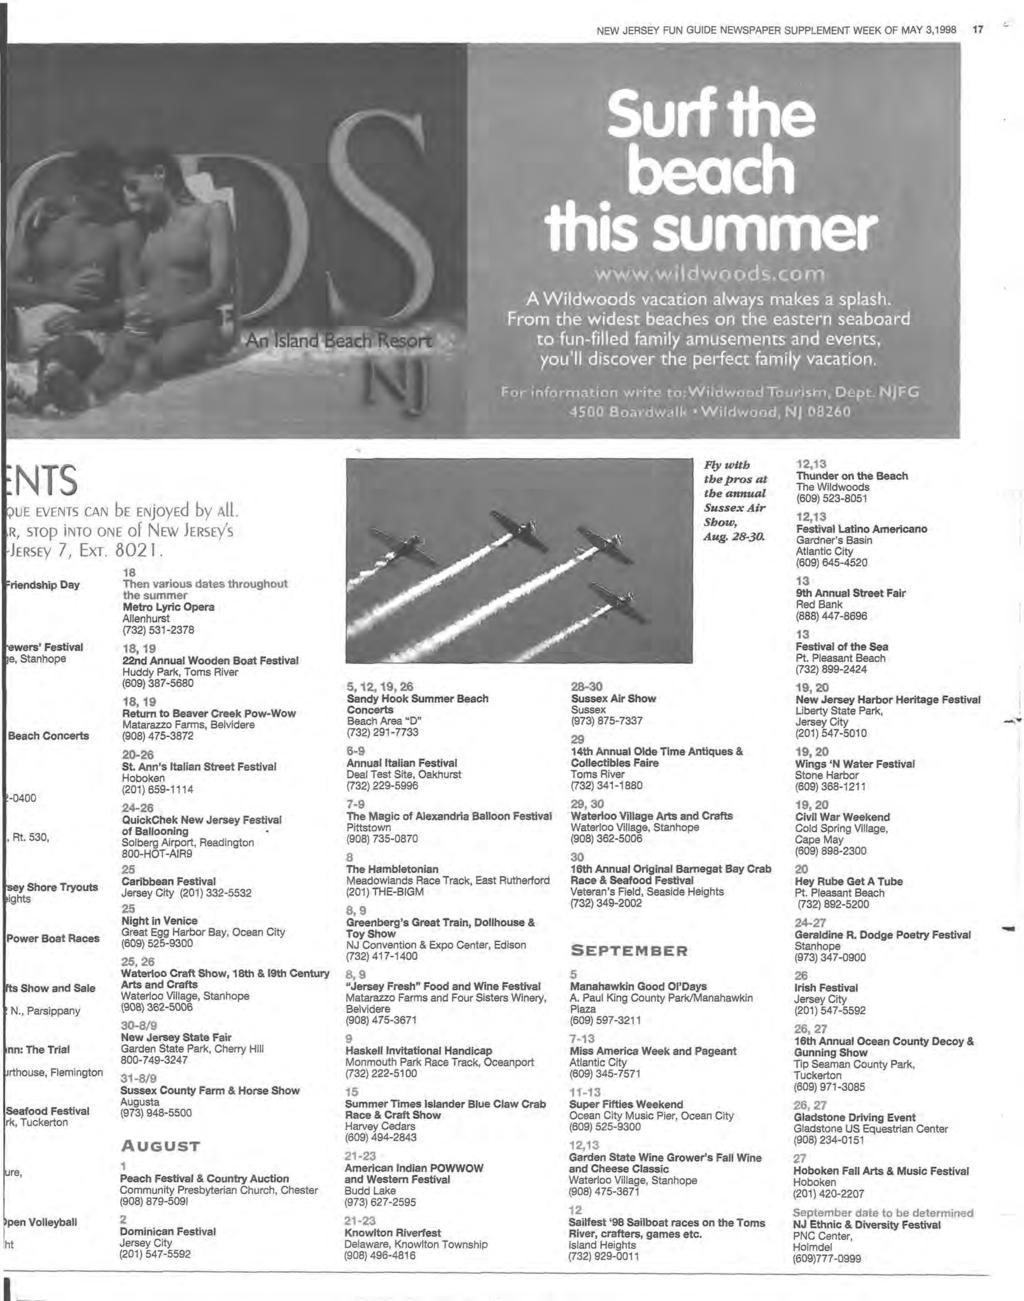 Open space ideas not wanting in m id town pdf new jersey fun guide newspaper supplement week of may 31998 17 s u r f t h e b e a c h t h i s s u m m e r w w fandeluxe Image collections